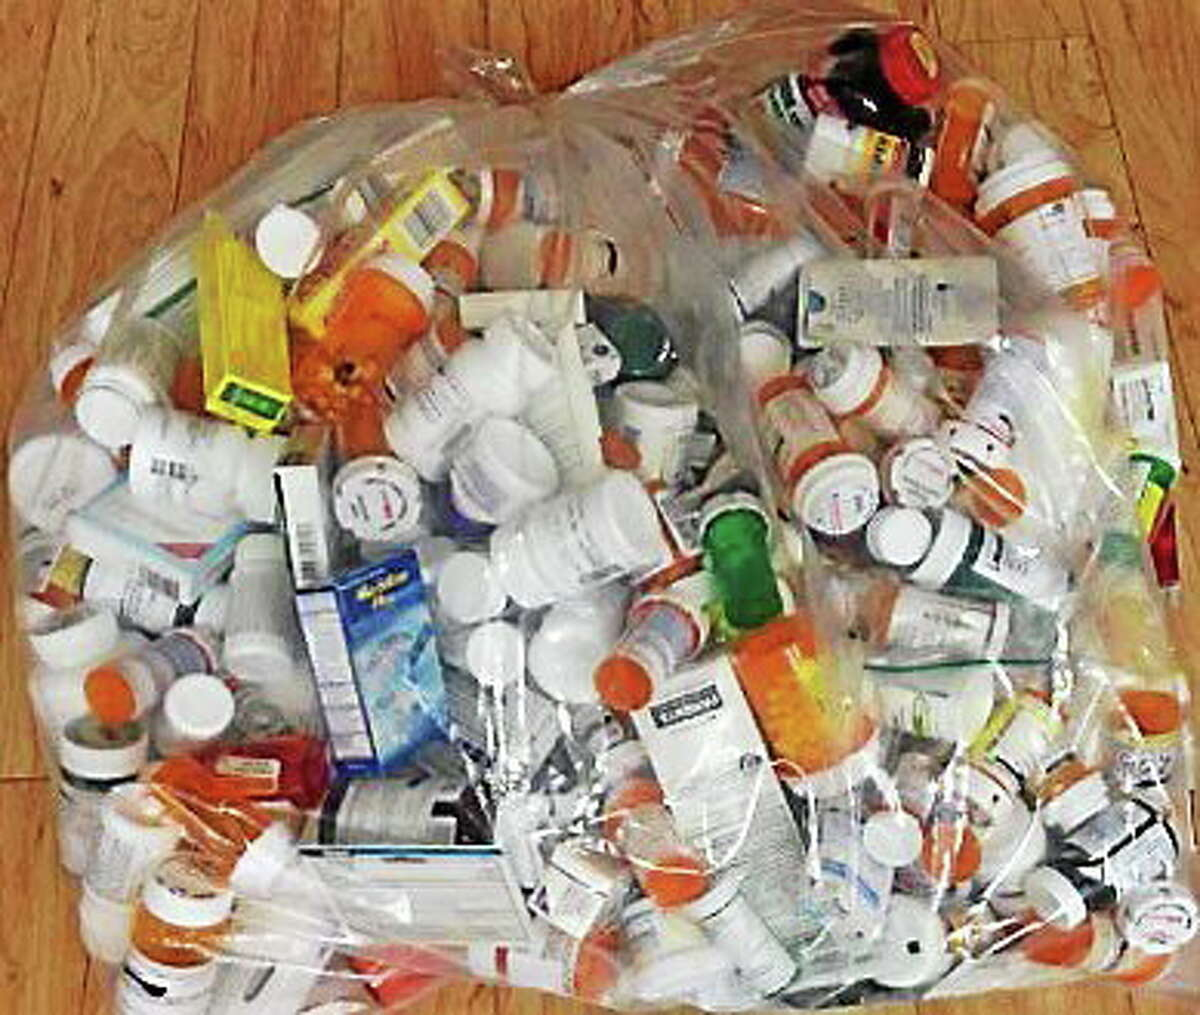 Submitted photo Middlefield and Durham residents turned in more than 110 pounds of prescription drugs during last week's take-back day coordinated by state and local authorities